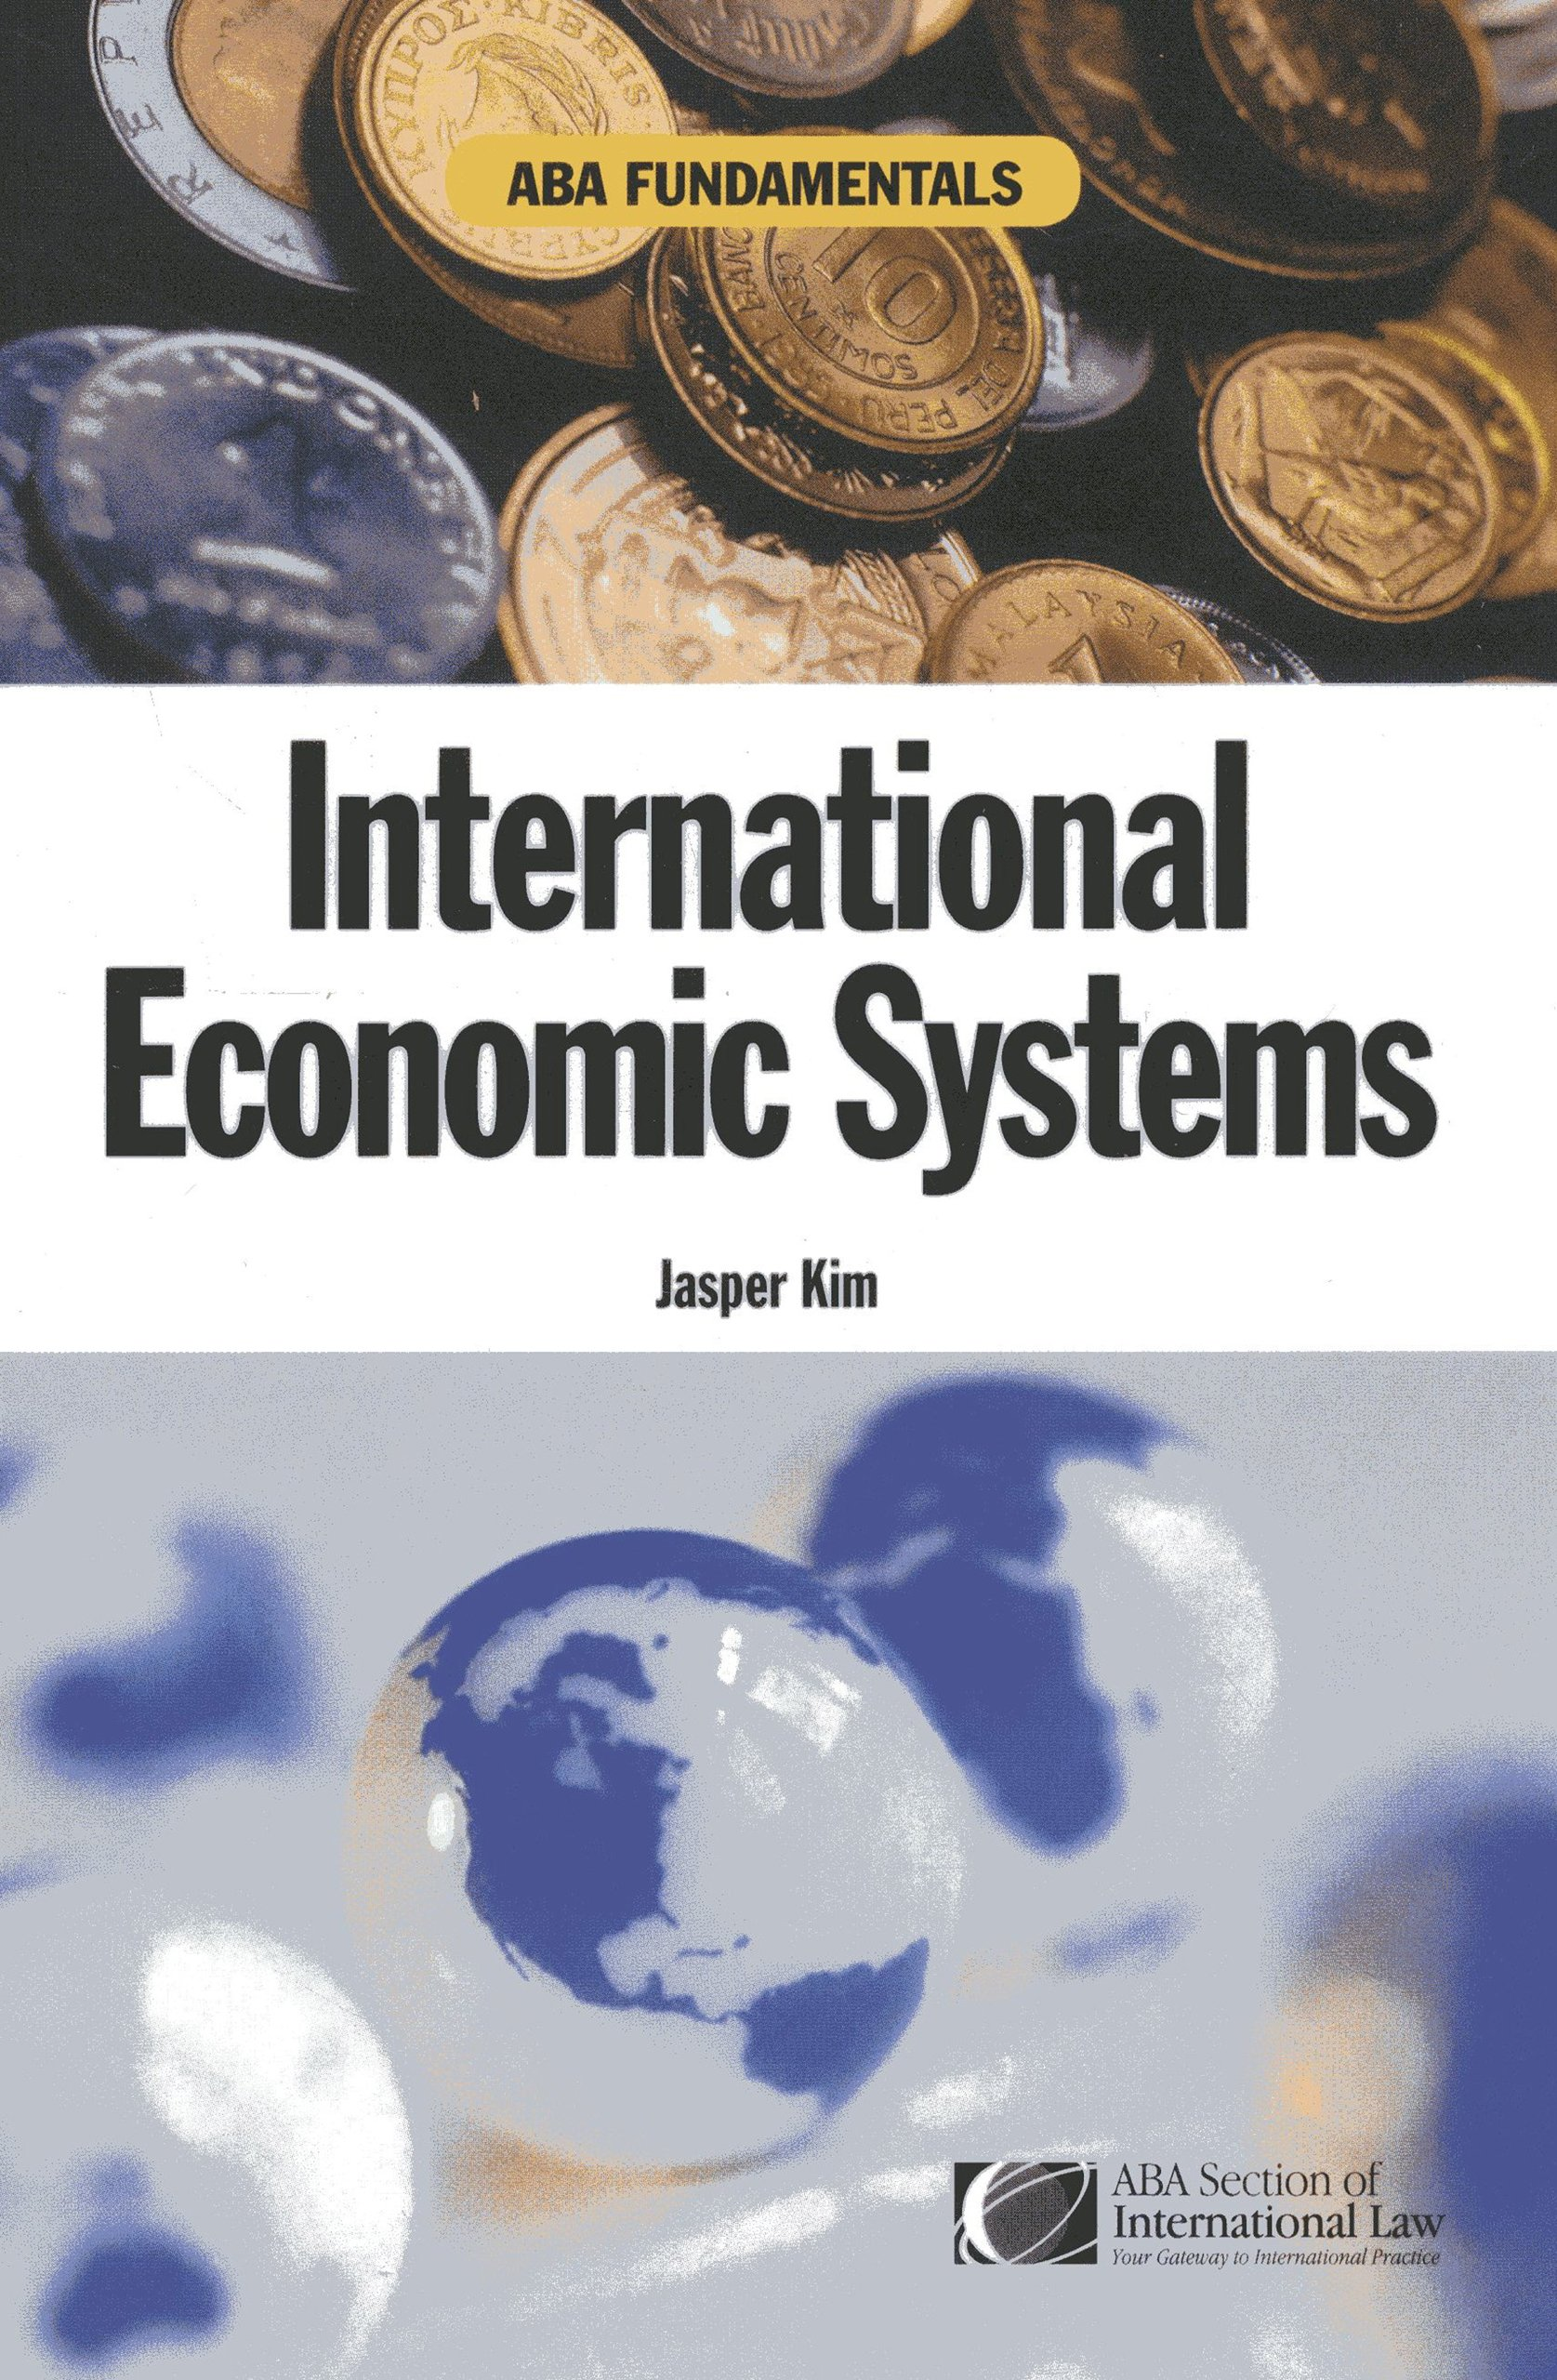 Download ABA Fundamentals: International Economic Systems (A Documentary History of Modern Europe Series) PDF